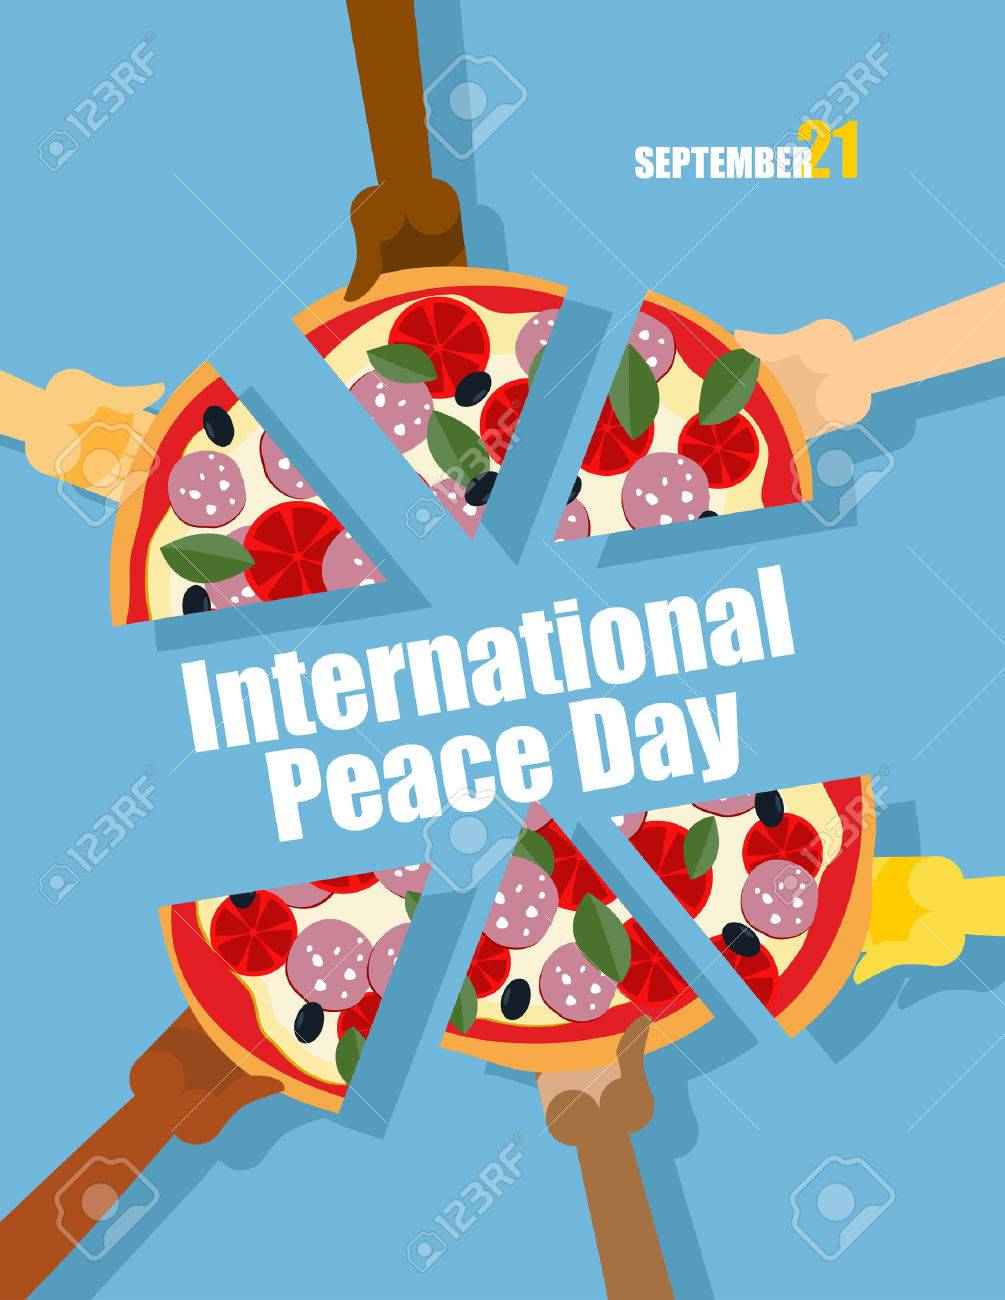 Day of Peace. 21 September international holiday. People eat pizza. Large pizza cut into pieces. Vector poster for event. - 43661970